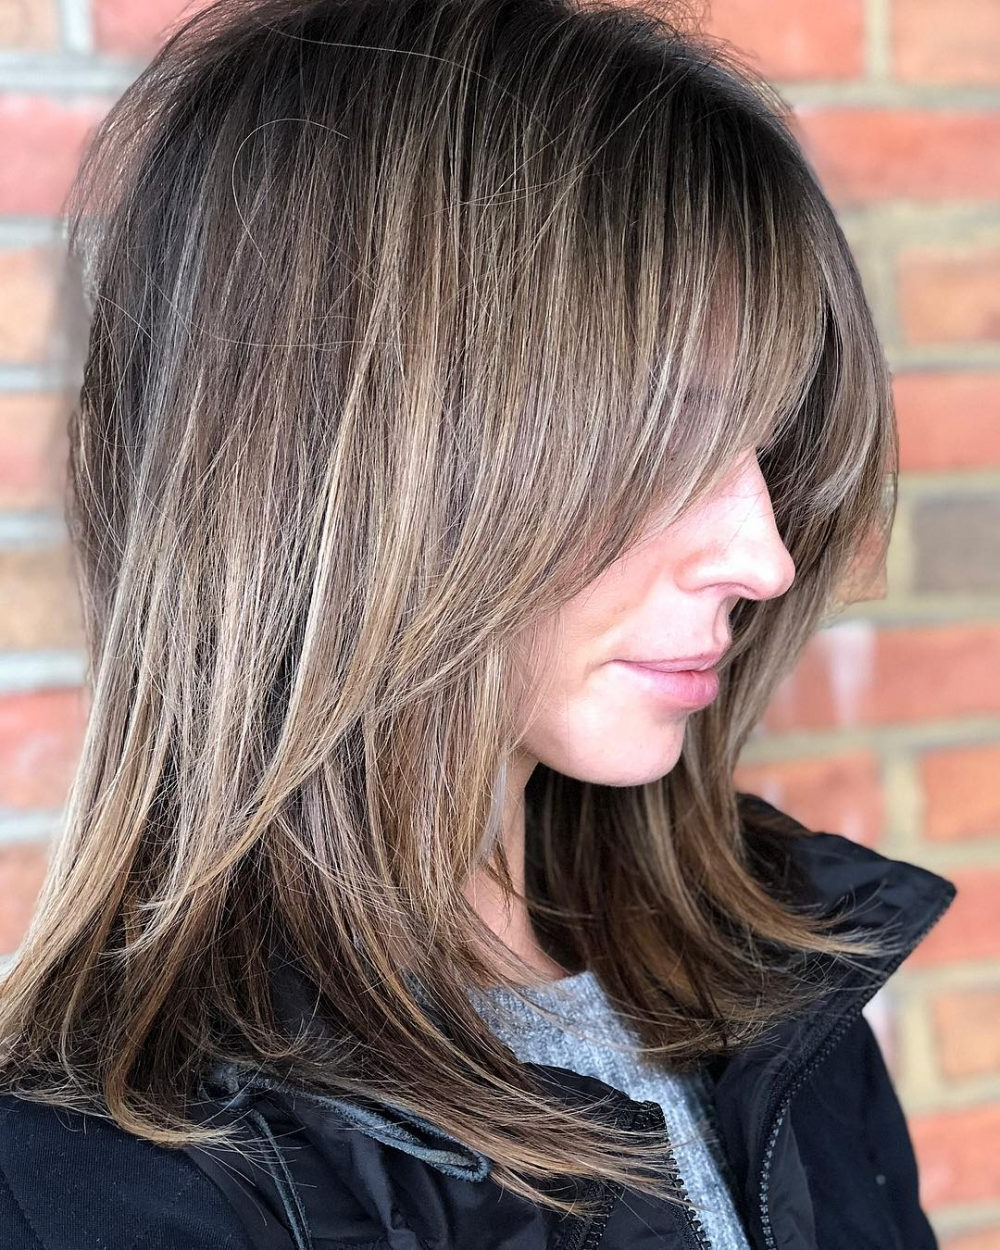 53 Popular Medium Length Hairstyles With Bangs In 2019 Throughout Widely Used Medium Golden Bronde Shag Hairstyles (Gallery 5 of 20)